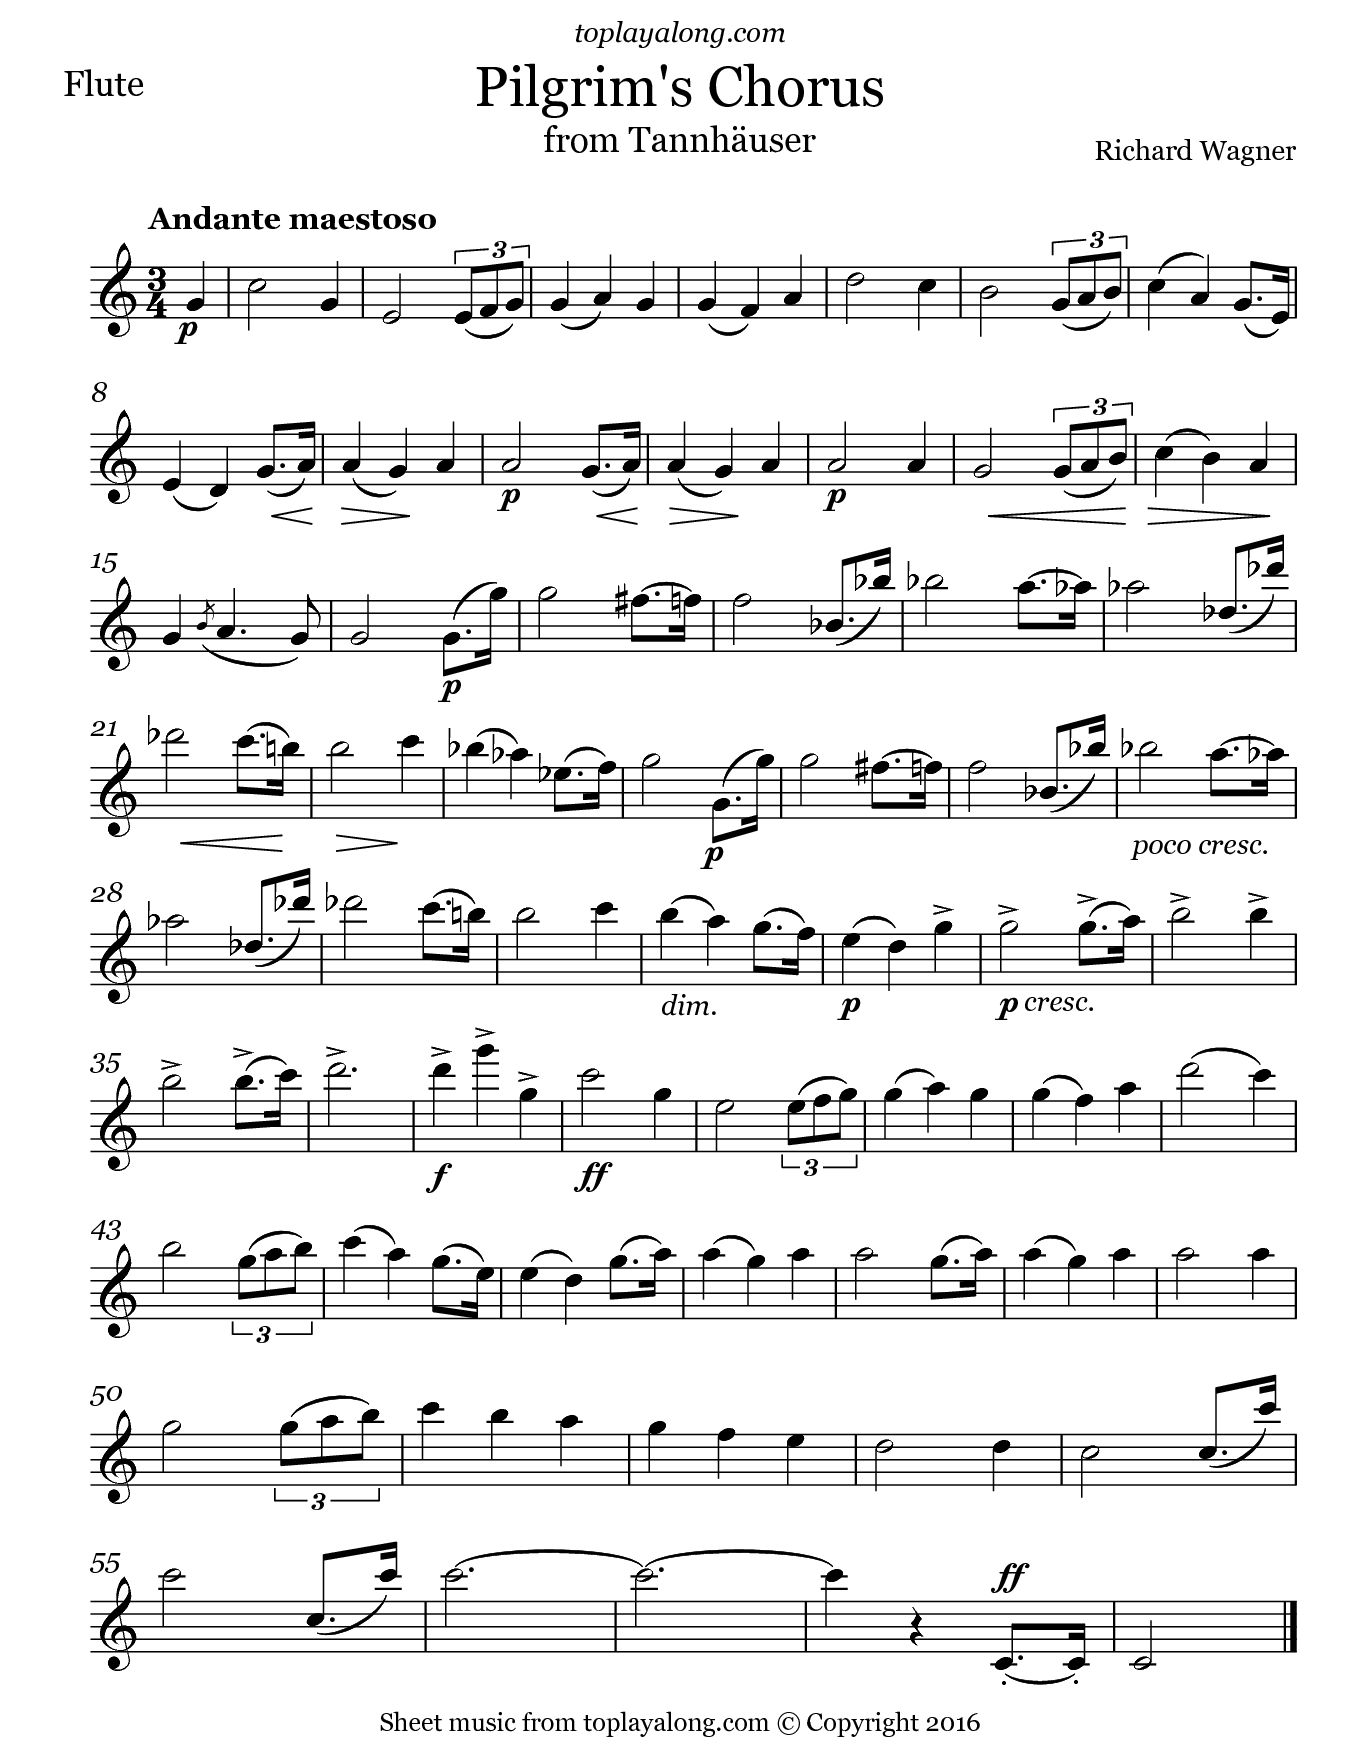 Pilgrim's Chorus from Tannhäuser by Wagner. Sheet music for Flute, page 1.